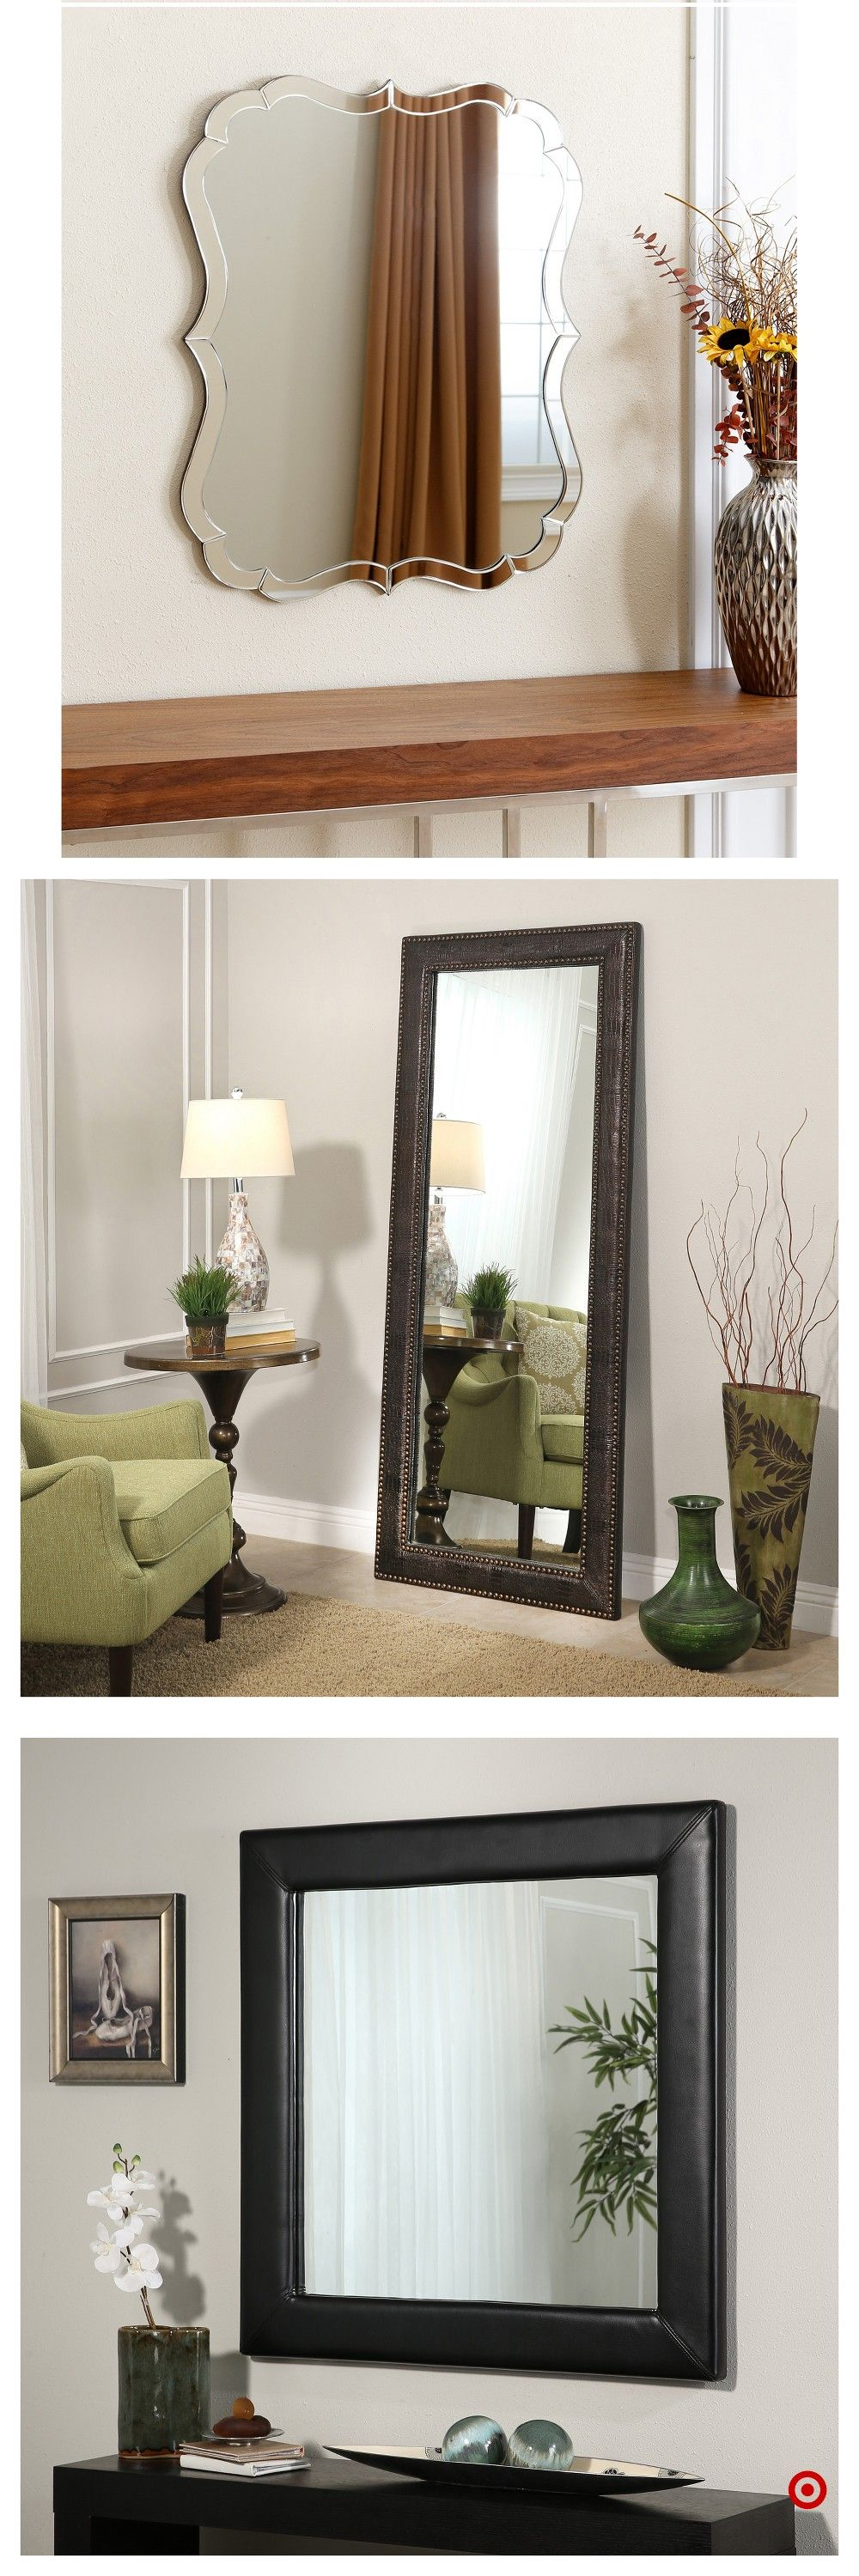 Shop Target For Decorative Wall Mirror You Will Love At